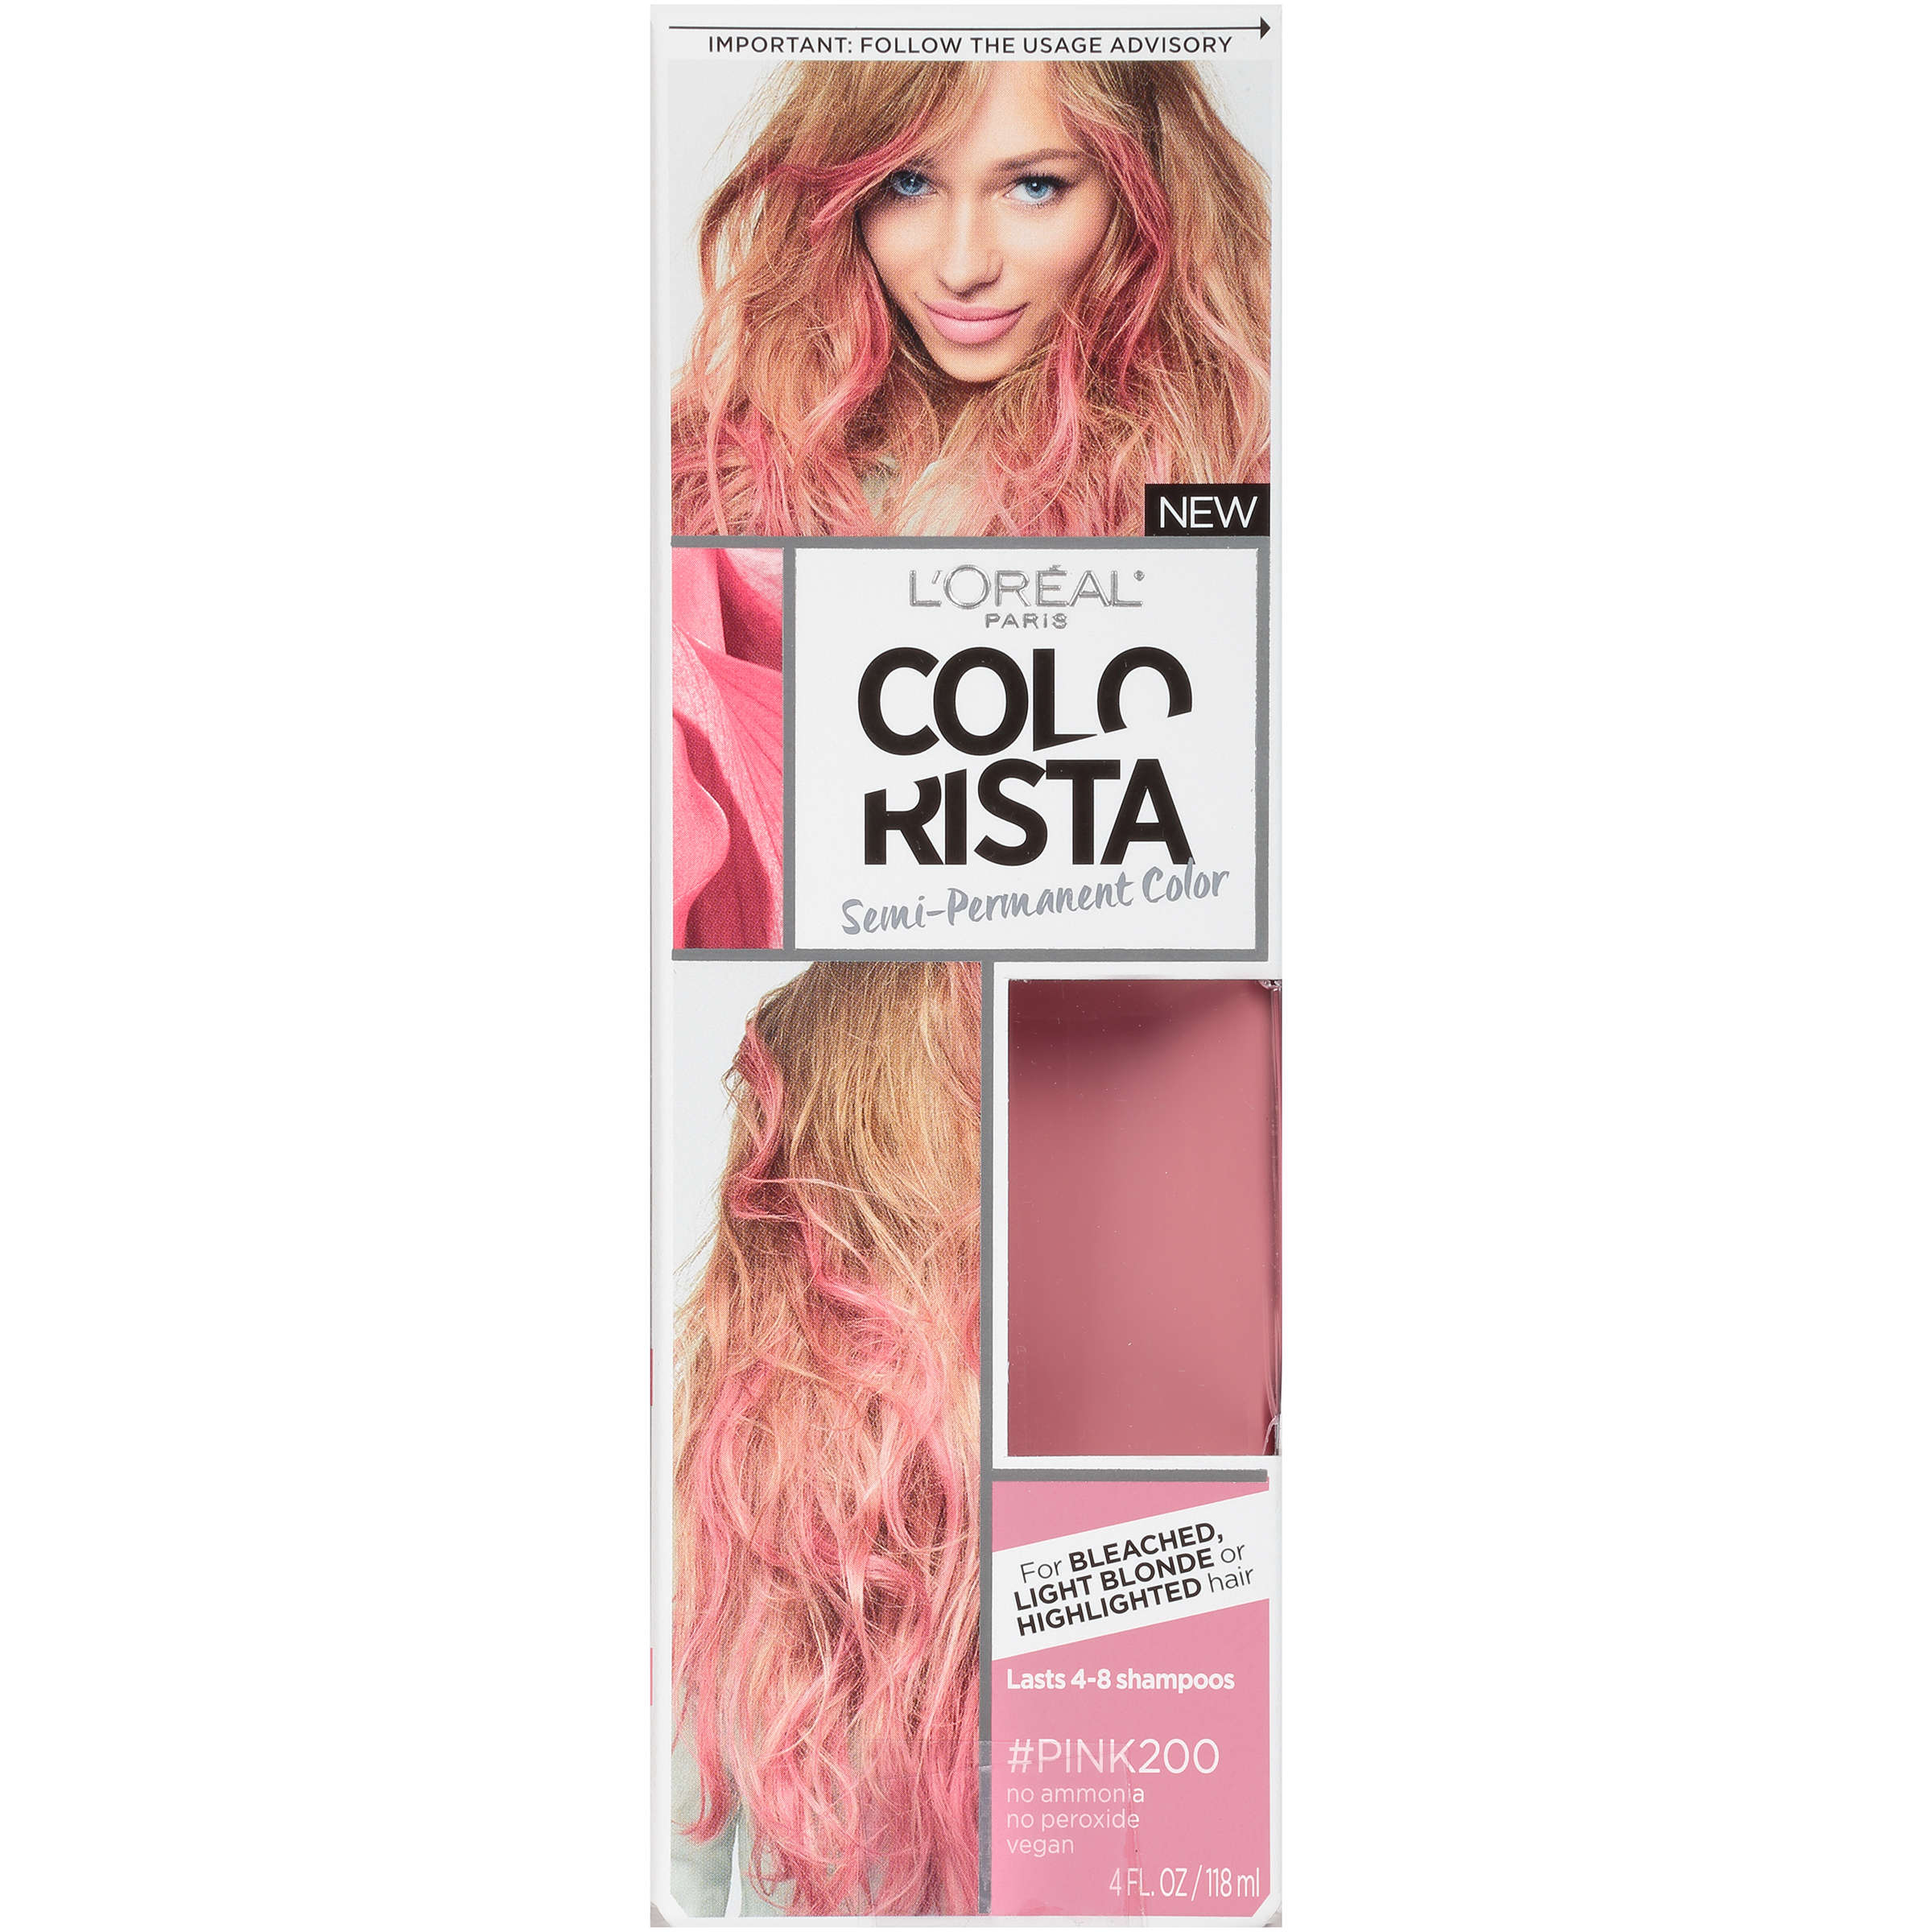 L'Oreal Paris Colorista Semi-Permanent for Light Blonde or Bleached Hair